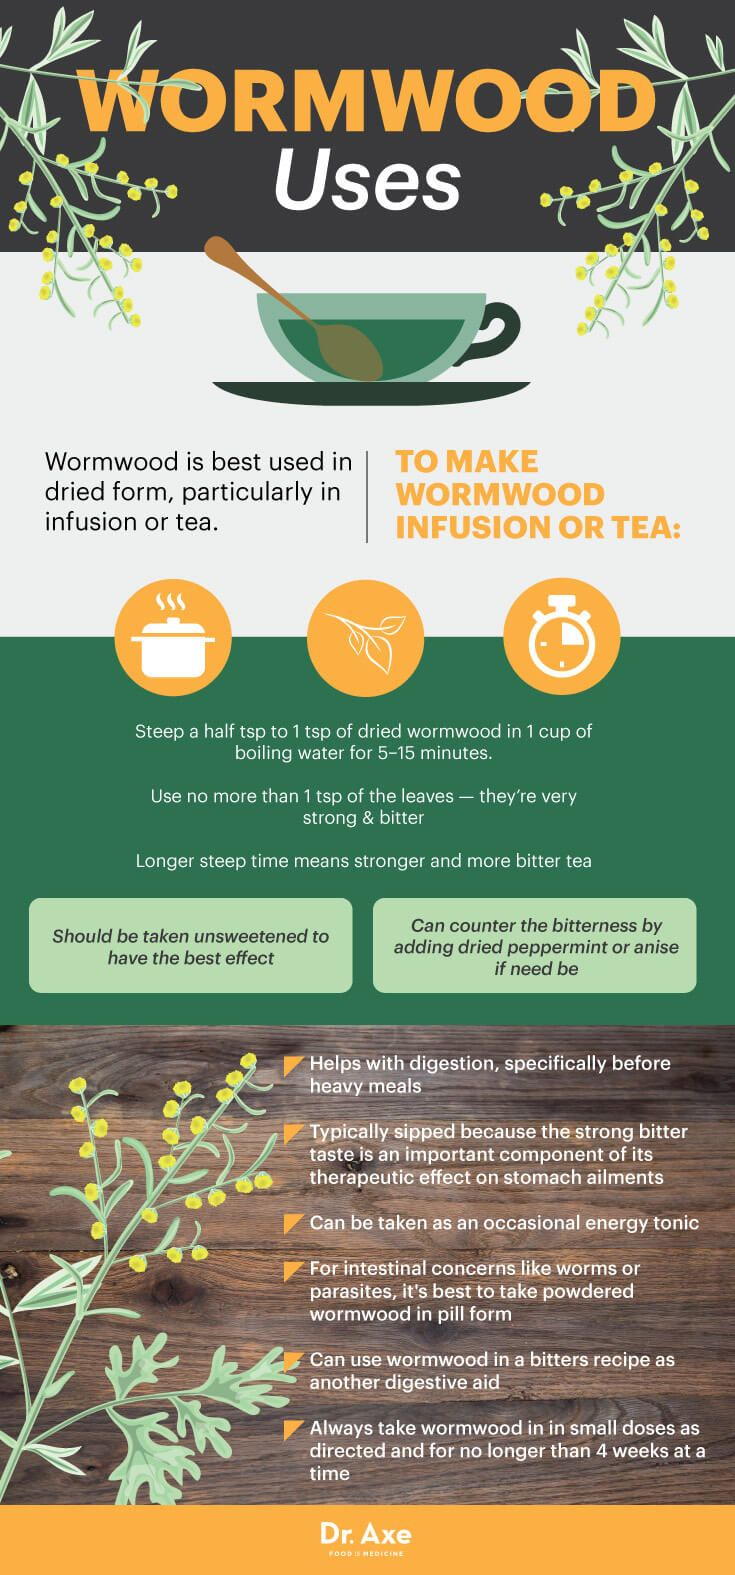 Wormwood uses - Dr. Axe http://www.draxe.com #health #holistic #natural